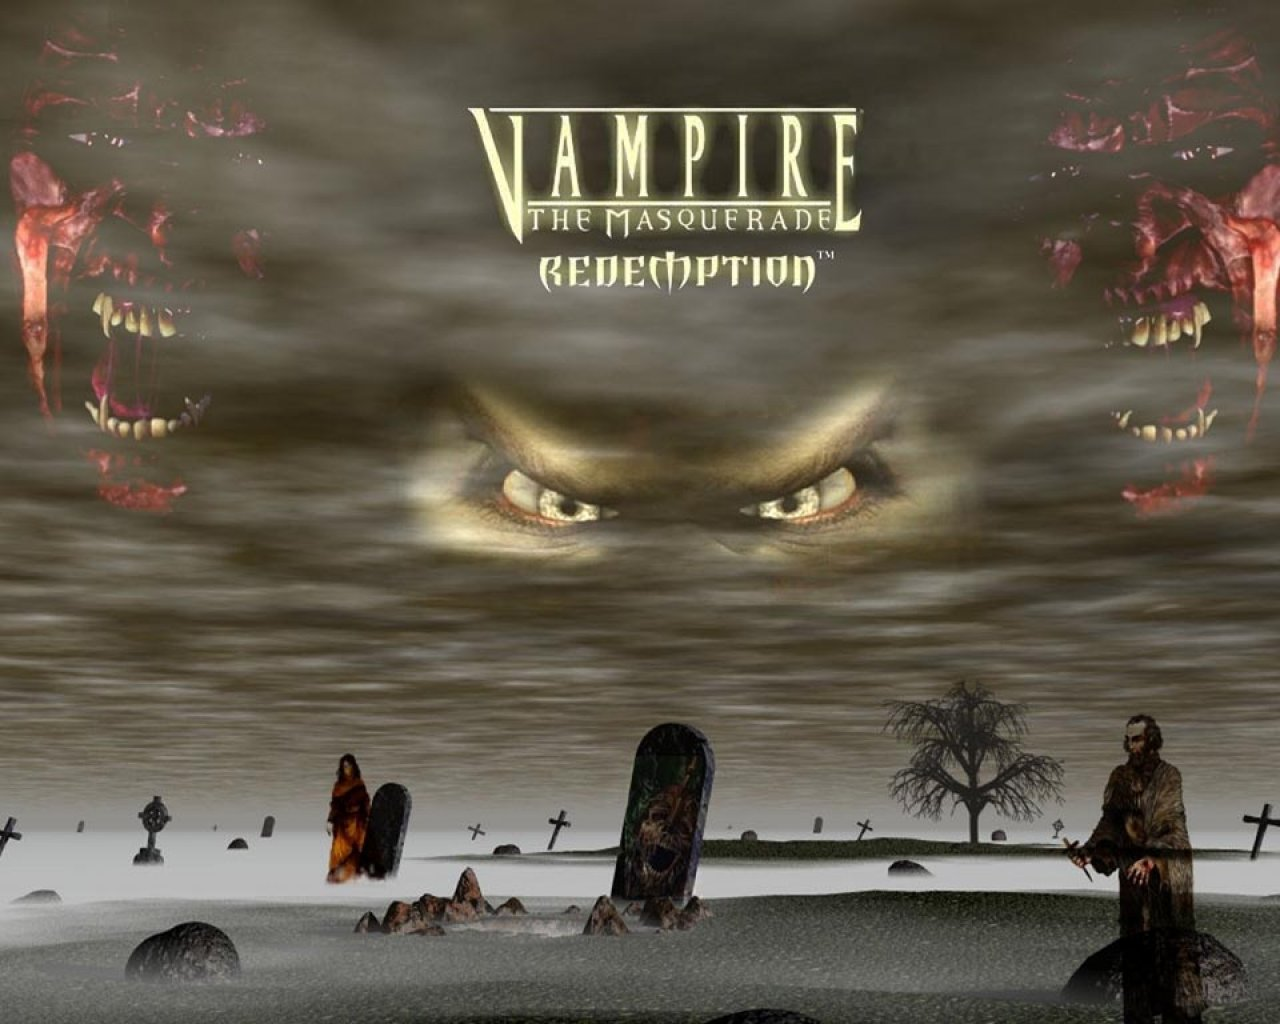 Vampire The Masquerade Backgrounds: Download Vampire Wallpapers